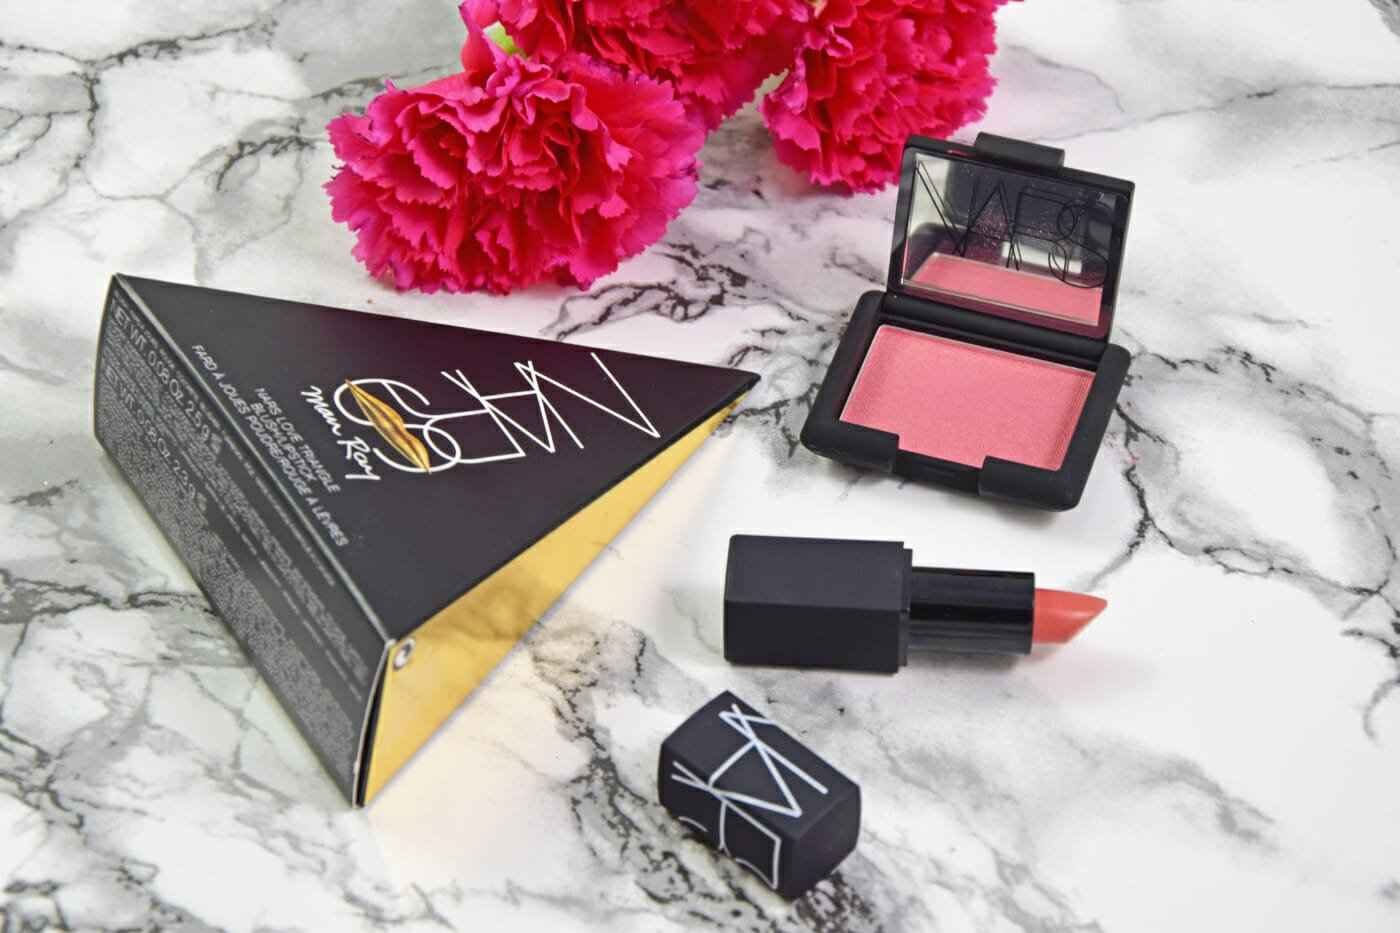 NARS love triangle holiday collection